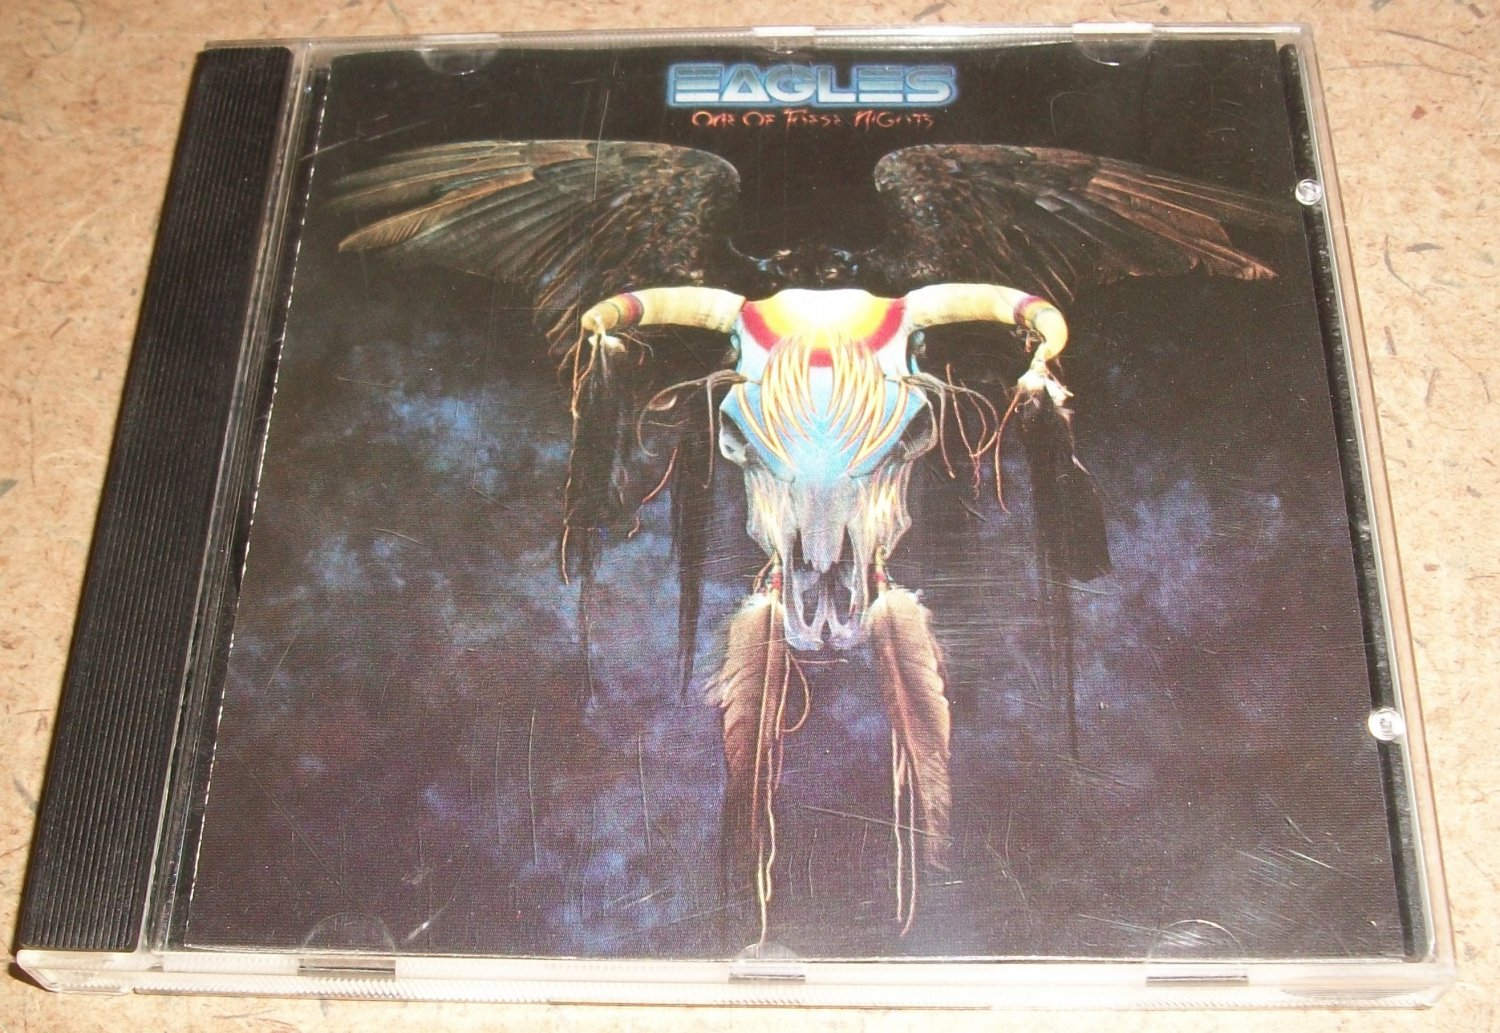 Eagles - One Of These Nights - Pop / Rock CD